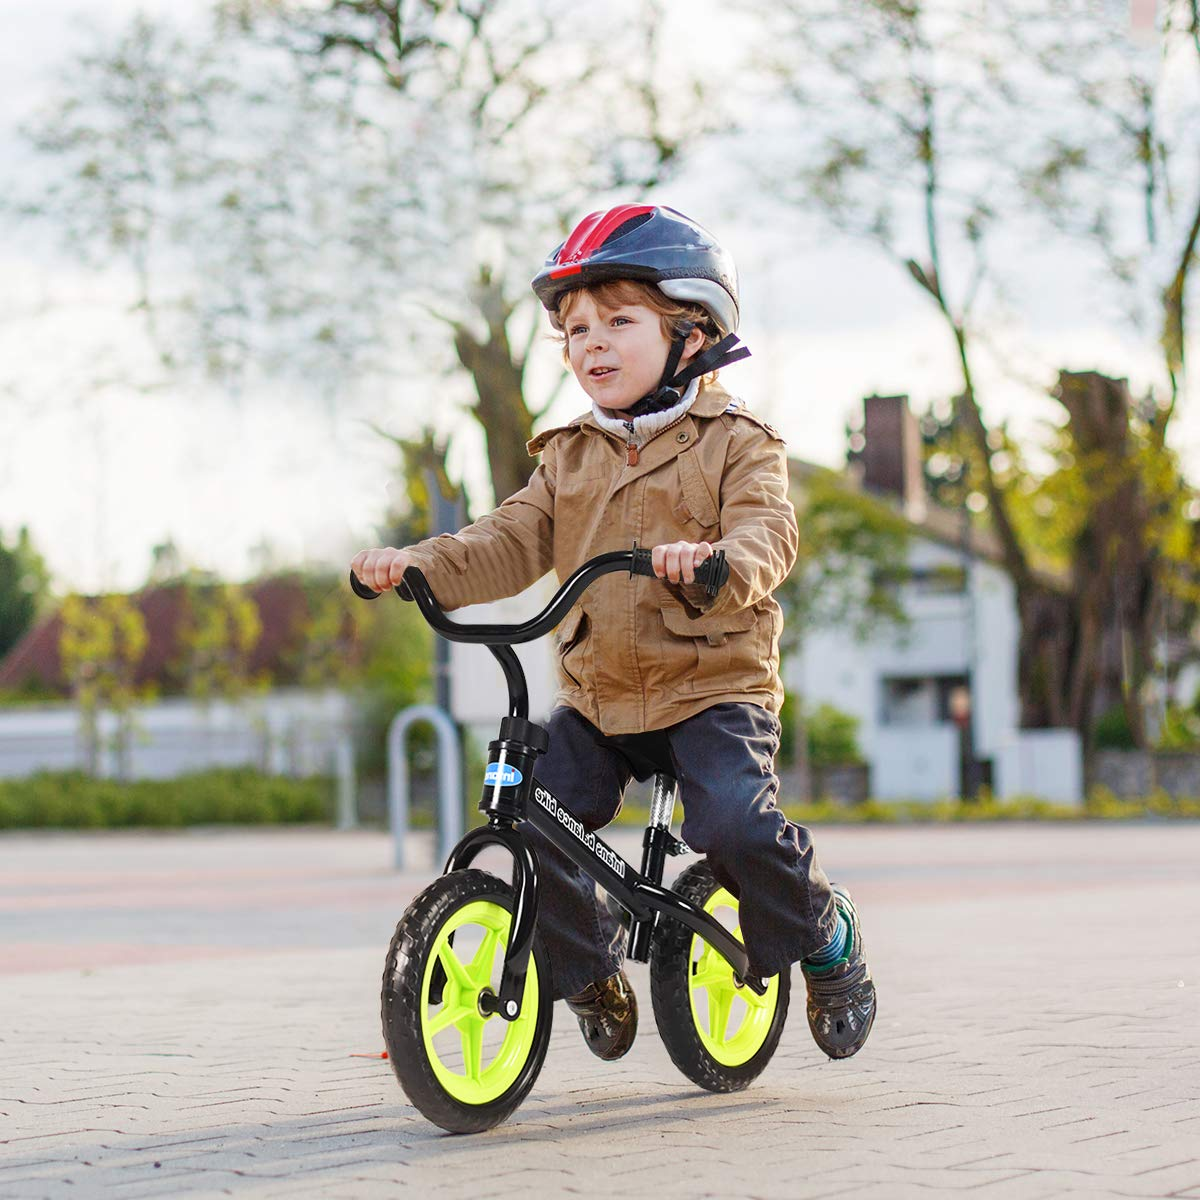 INFANS Lightweight Balance Bike Inflation-Free EVA Tires No-Pedal Pre Walking Bike for Toddler /& Children Ages 2 to 5 Years Kids Training Bicycle with Height Adjustable Seat /& Handlebar